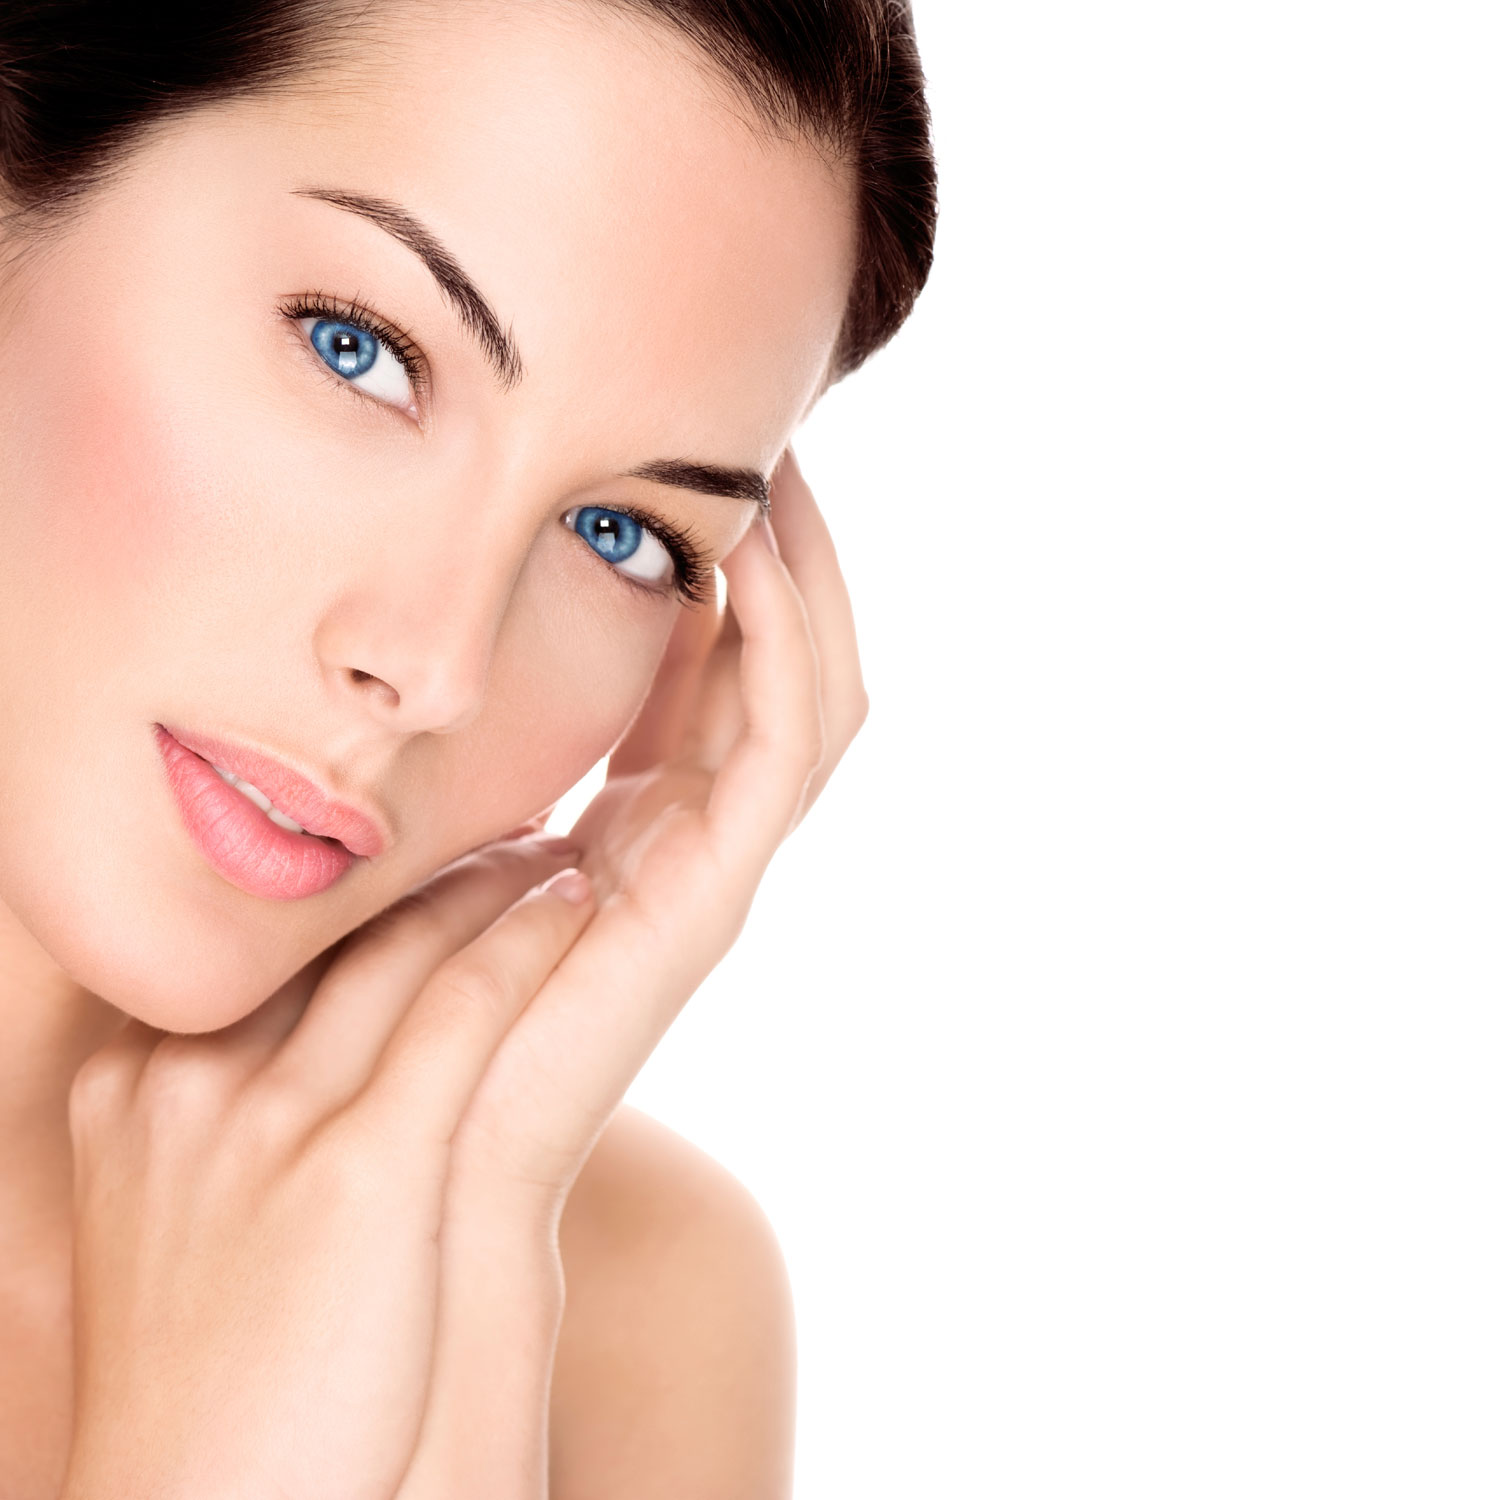 Healthy Skin Care: FIVE ESSENTIAL NUTRIENTS FOR HEALTHY SKIN AND WHERE TO